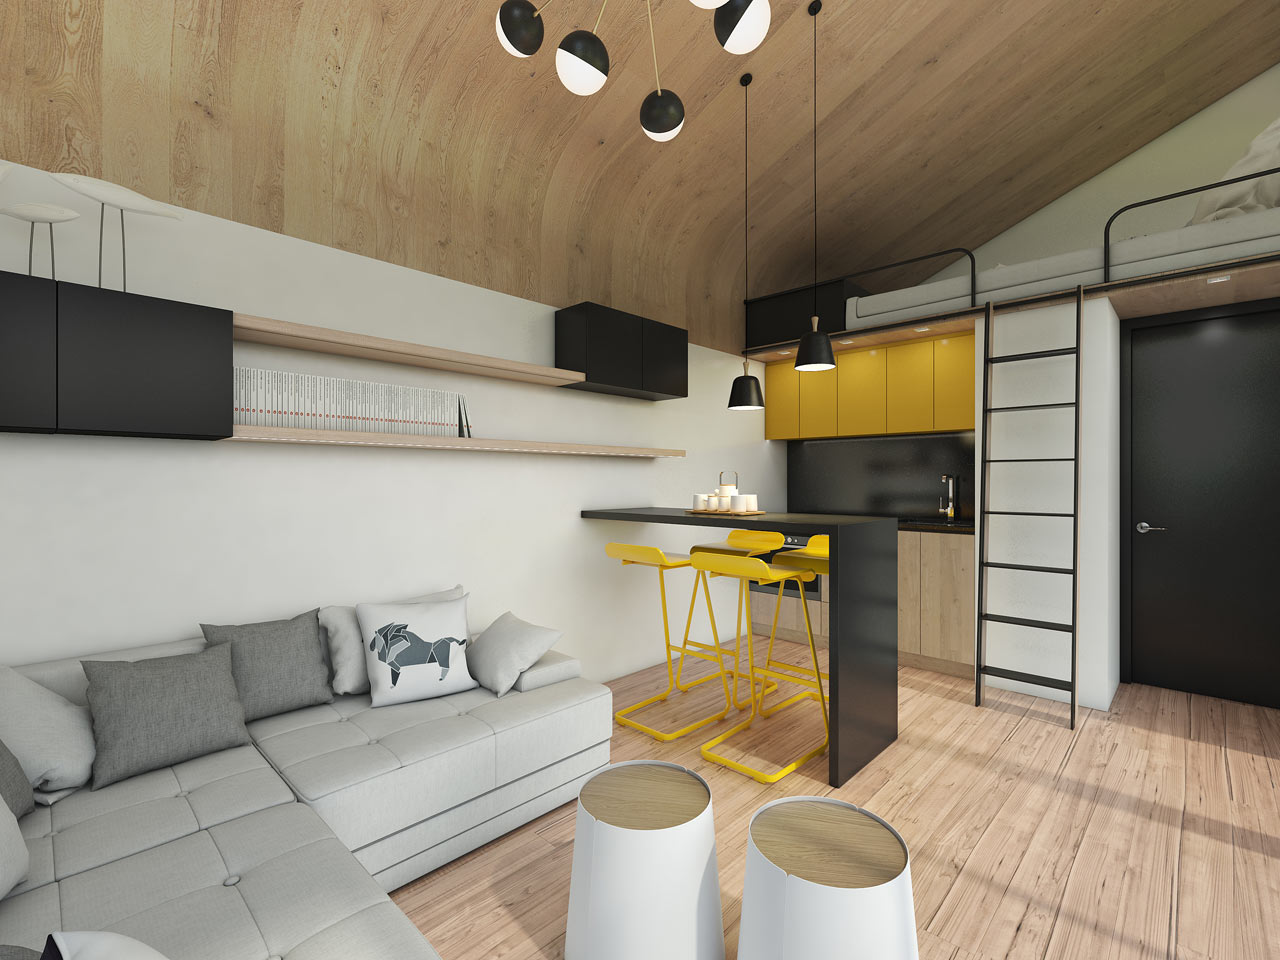 Salt & Water's Portable Tiny House Concept